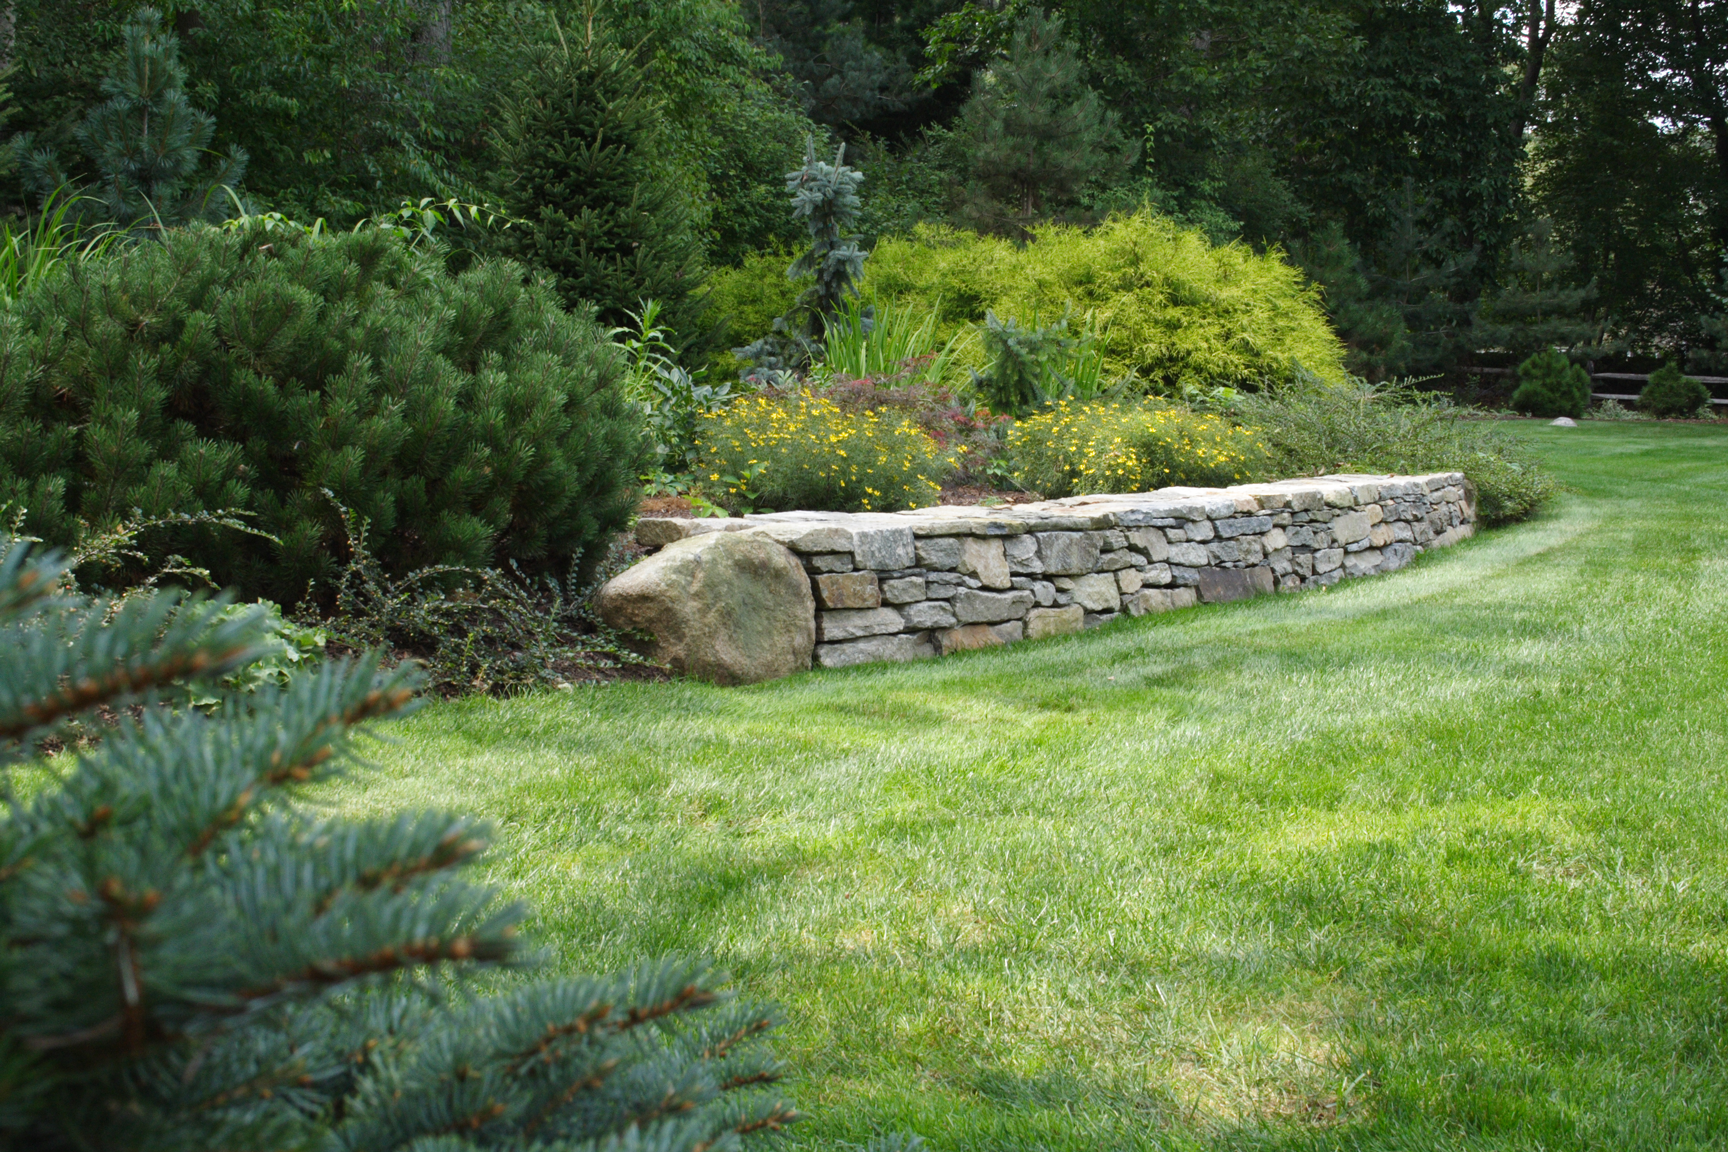 Backyard Walling and Landscaping Done by Burnett's Landscaping